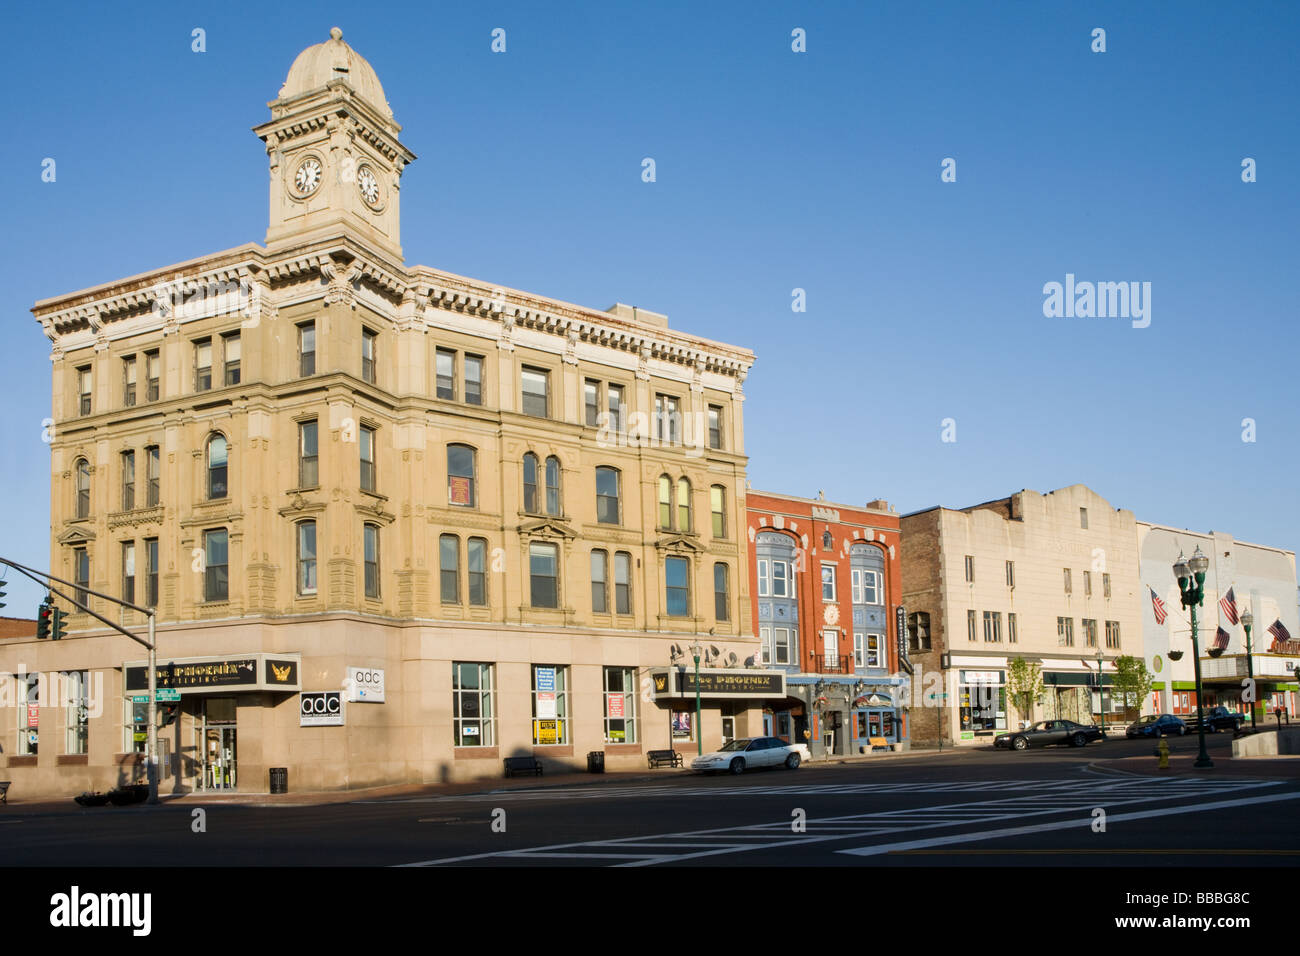 Impressive architecture Phoenix Building Auburn New York Cayuga County Finger Lakes Region - Stock Image